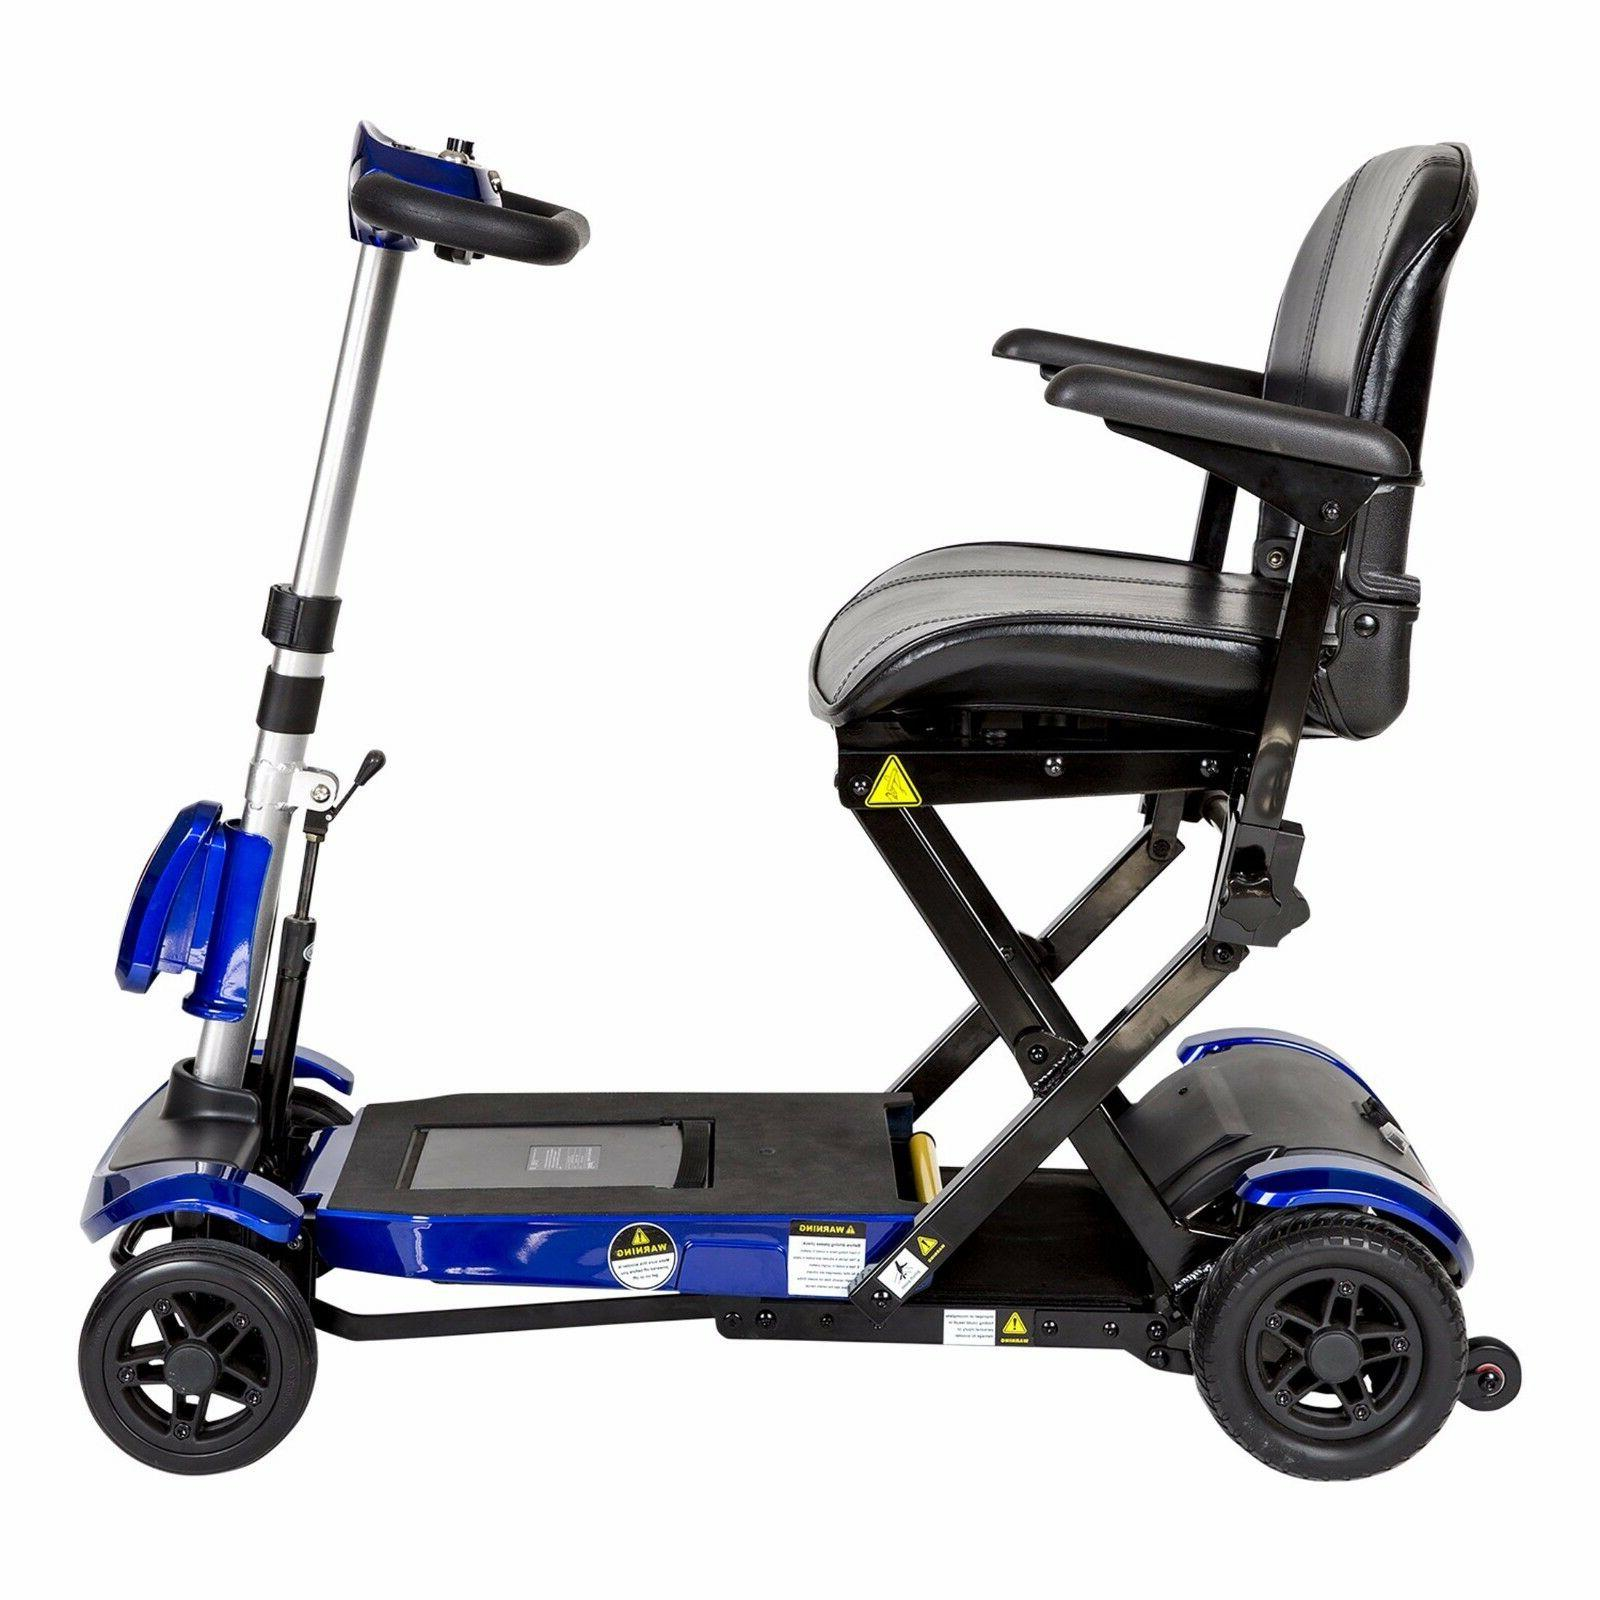 Drive Blue Electronically Self-Folding 4 Scooter, 300 lb